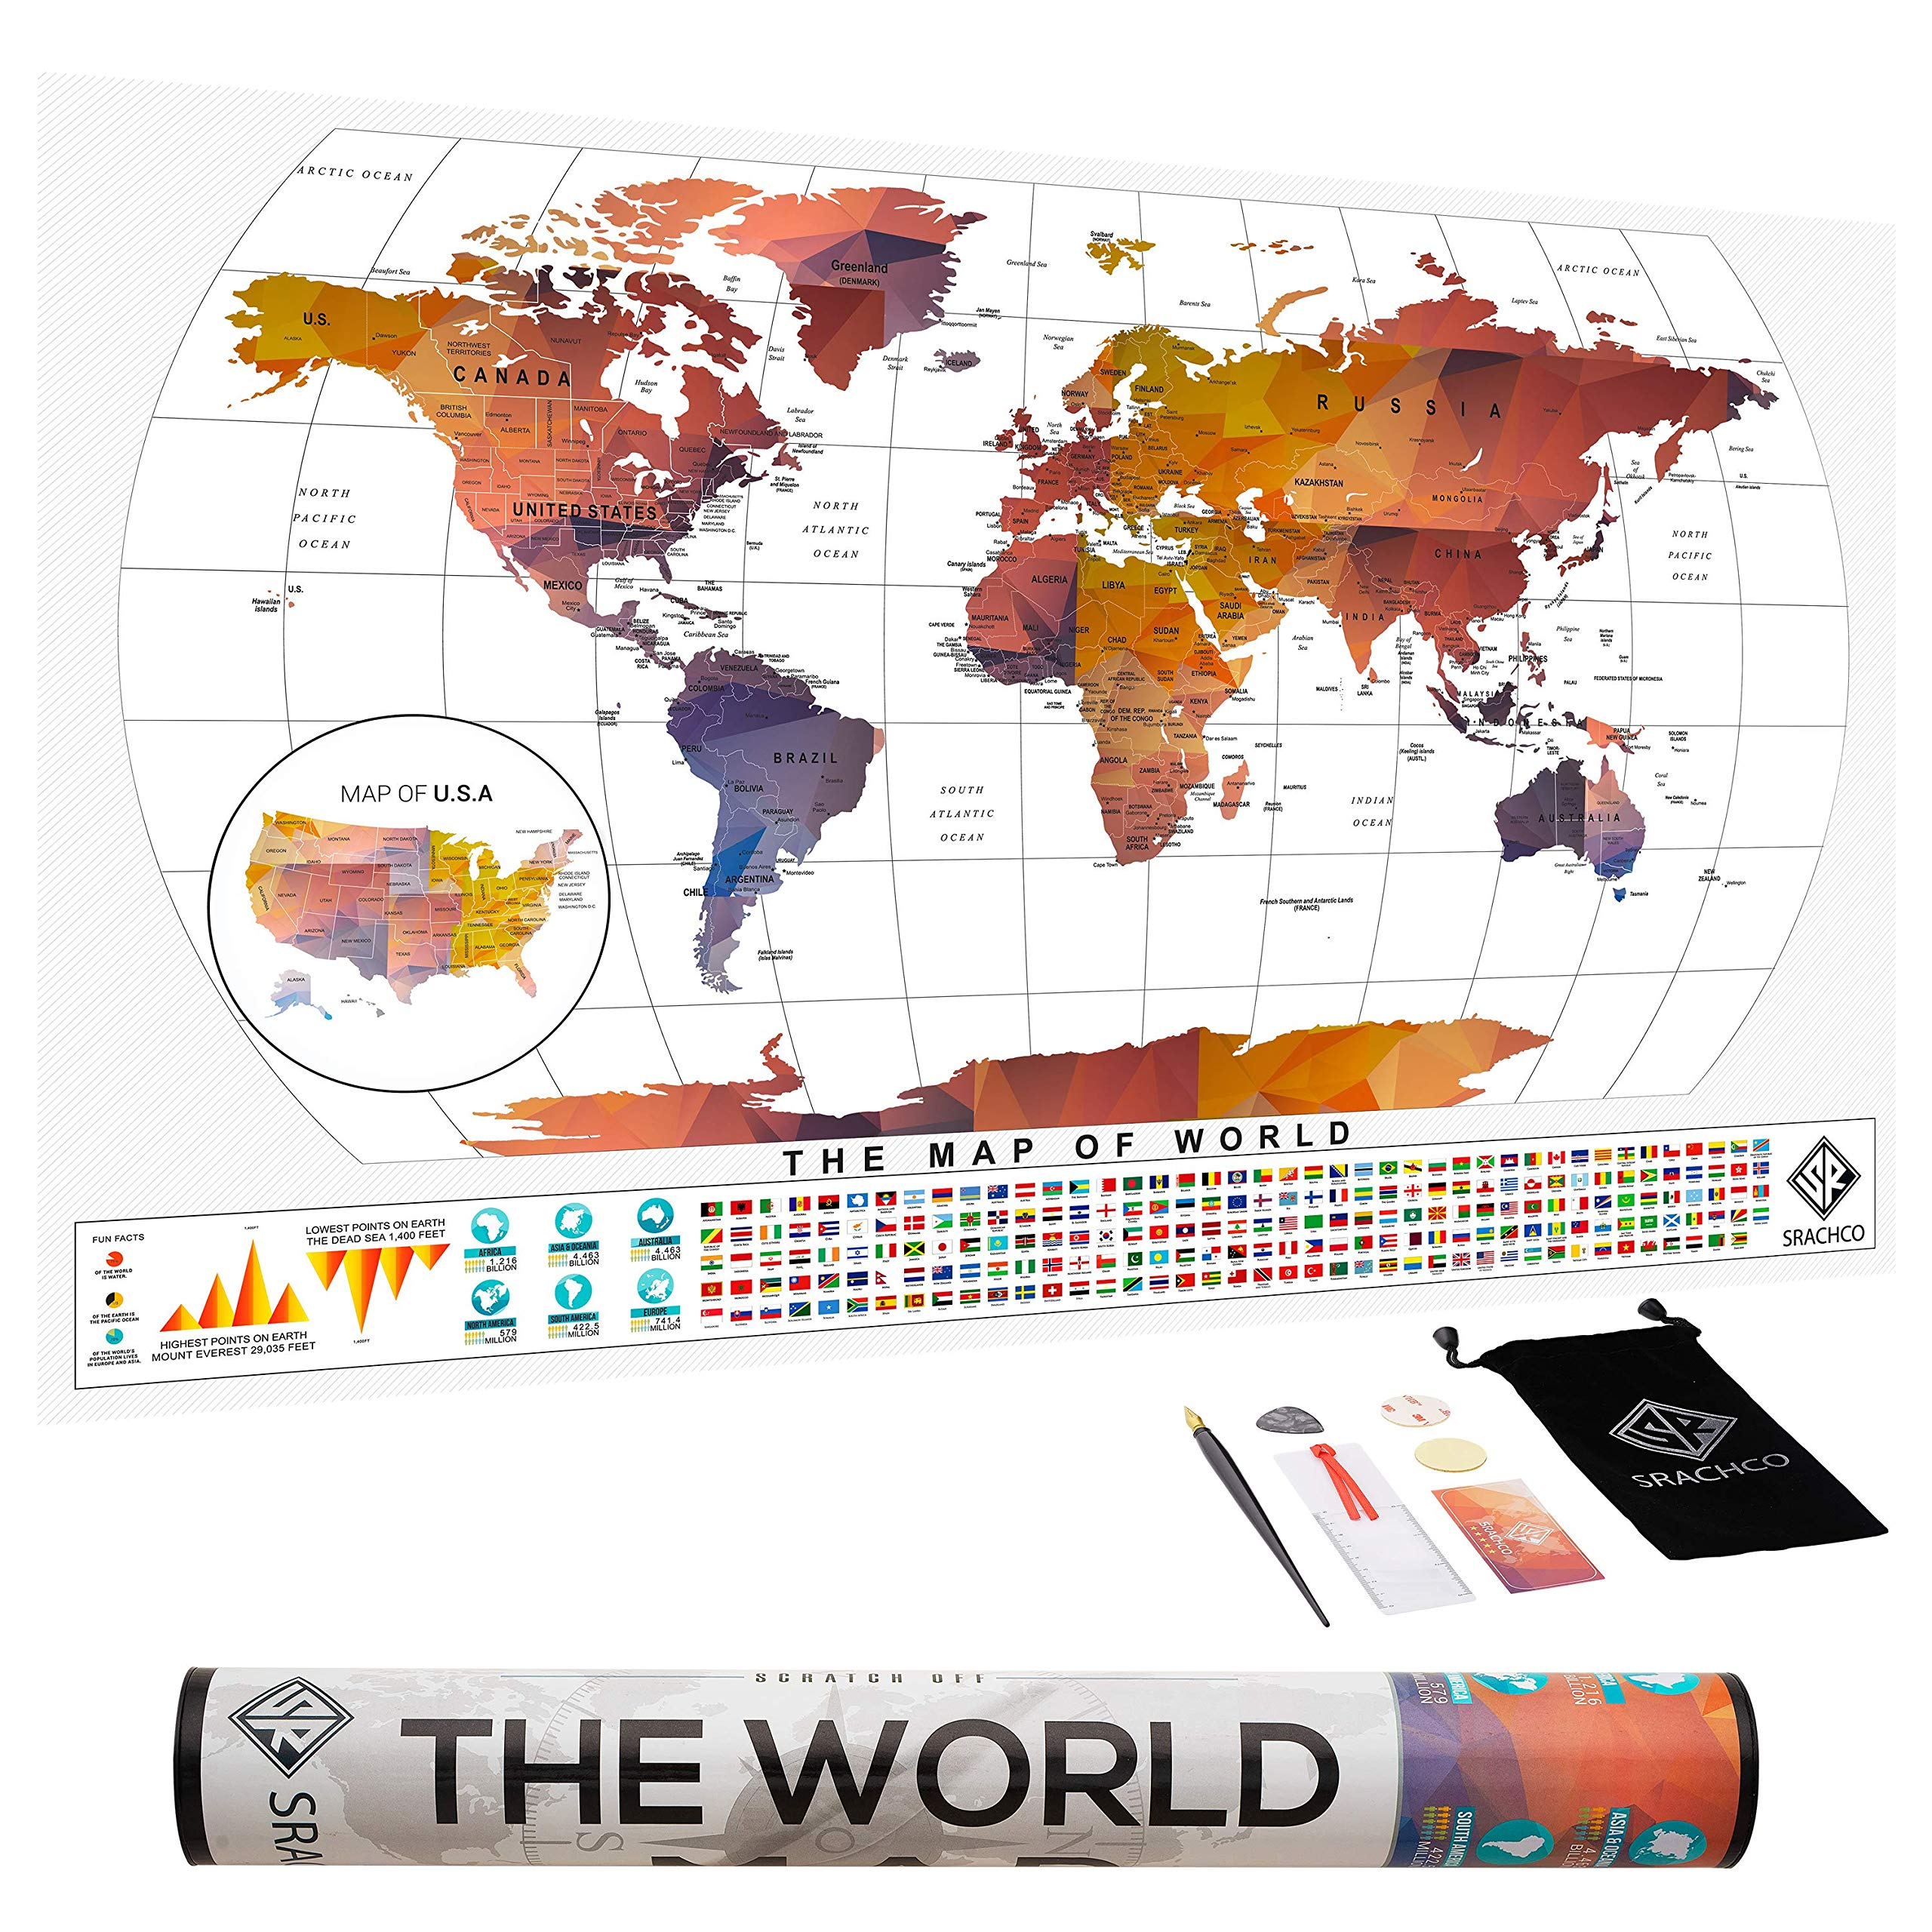 Transparent Scratch Off Map of The World - 27'' x17'' + Premium Scratch Off Map of The United States - Premium Quality Scratch Off Map - World Map Poster - Cool Posters Make Best Gifts for Travelers by Srachco